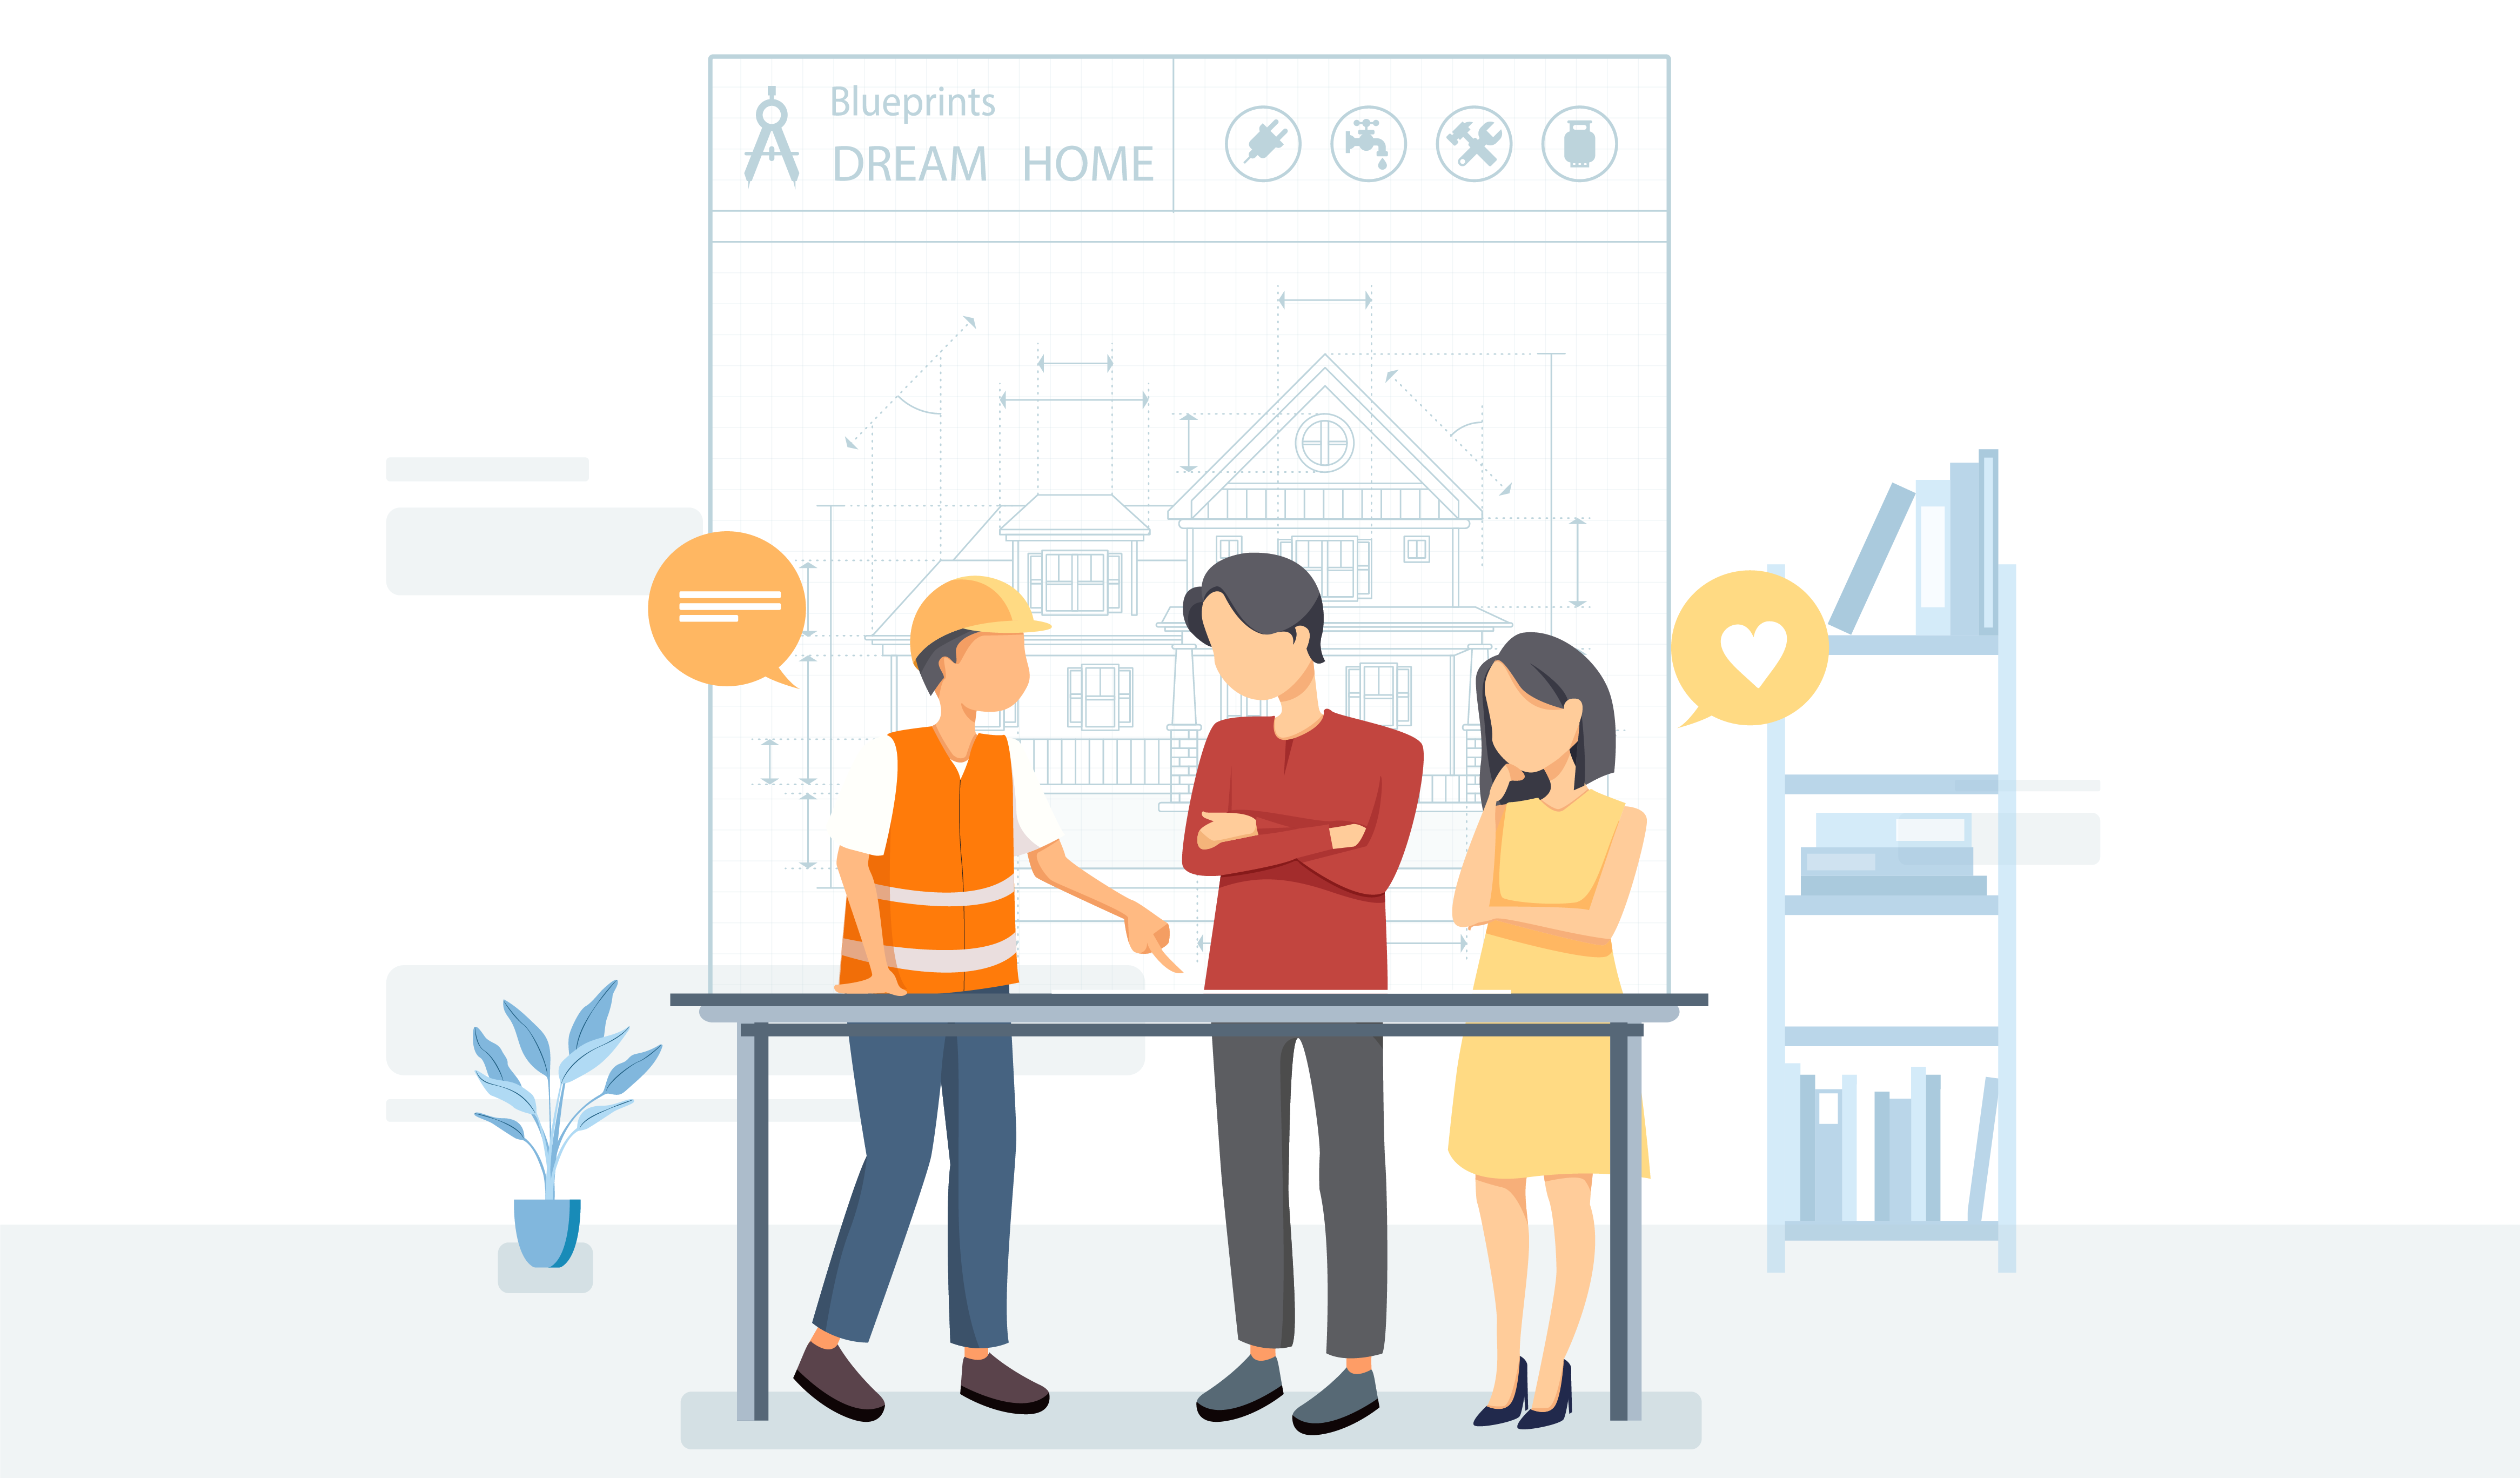 Illustration of people looking at a marketing blueprint